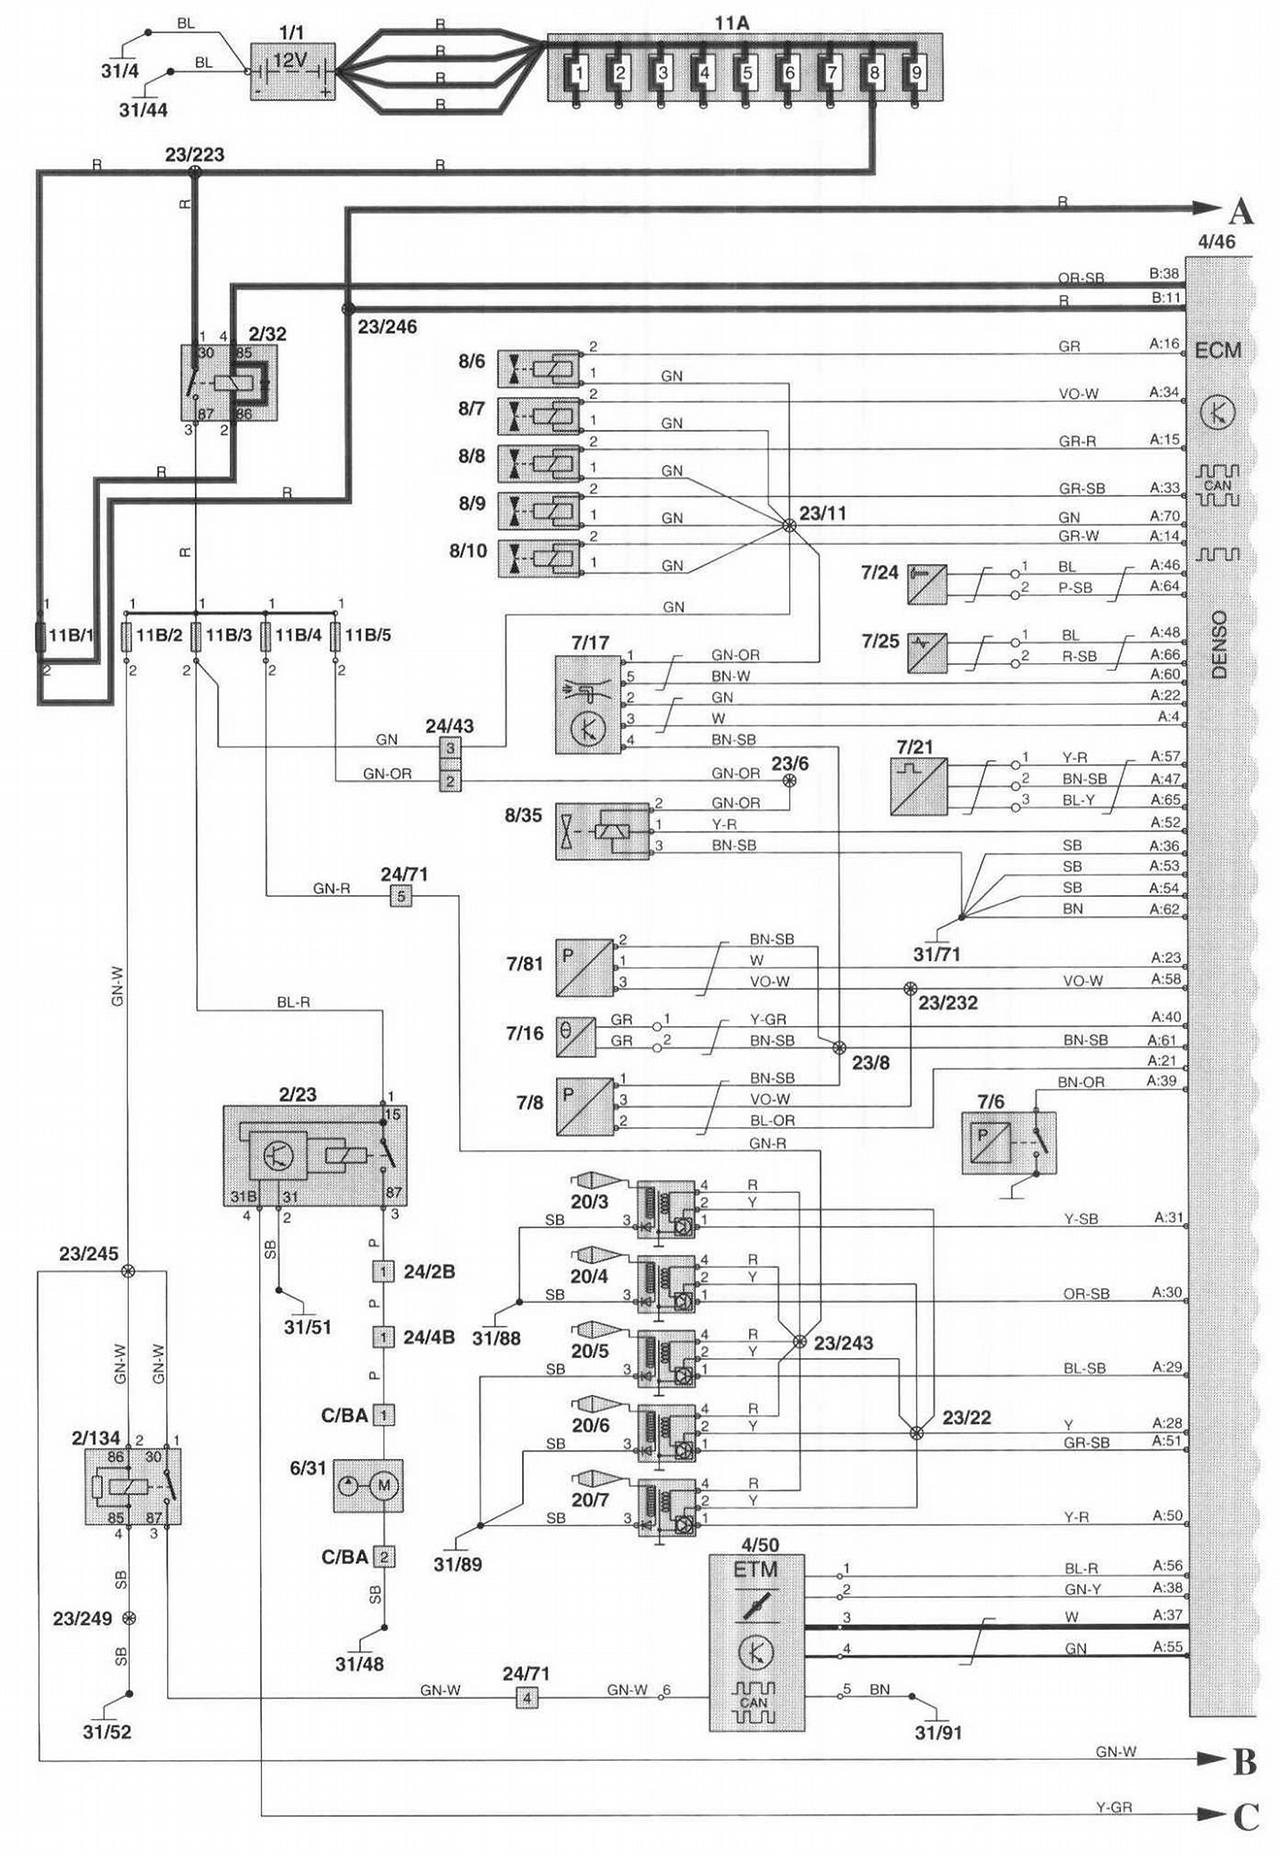 Wiring Diagram Volvo Fh16 : Volvo vnl alternator wiring diagrams ford f